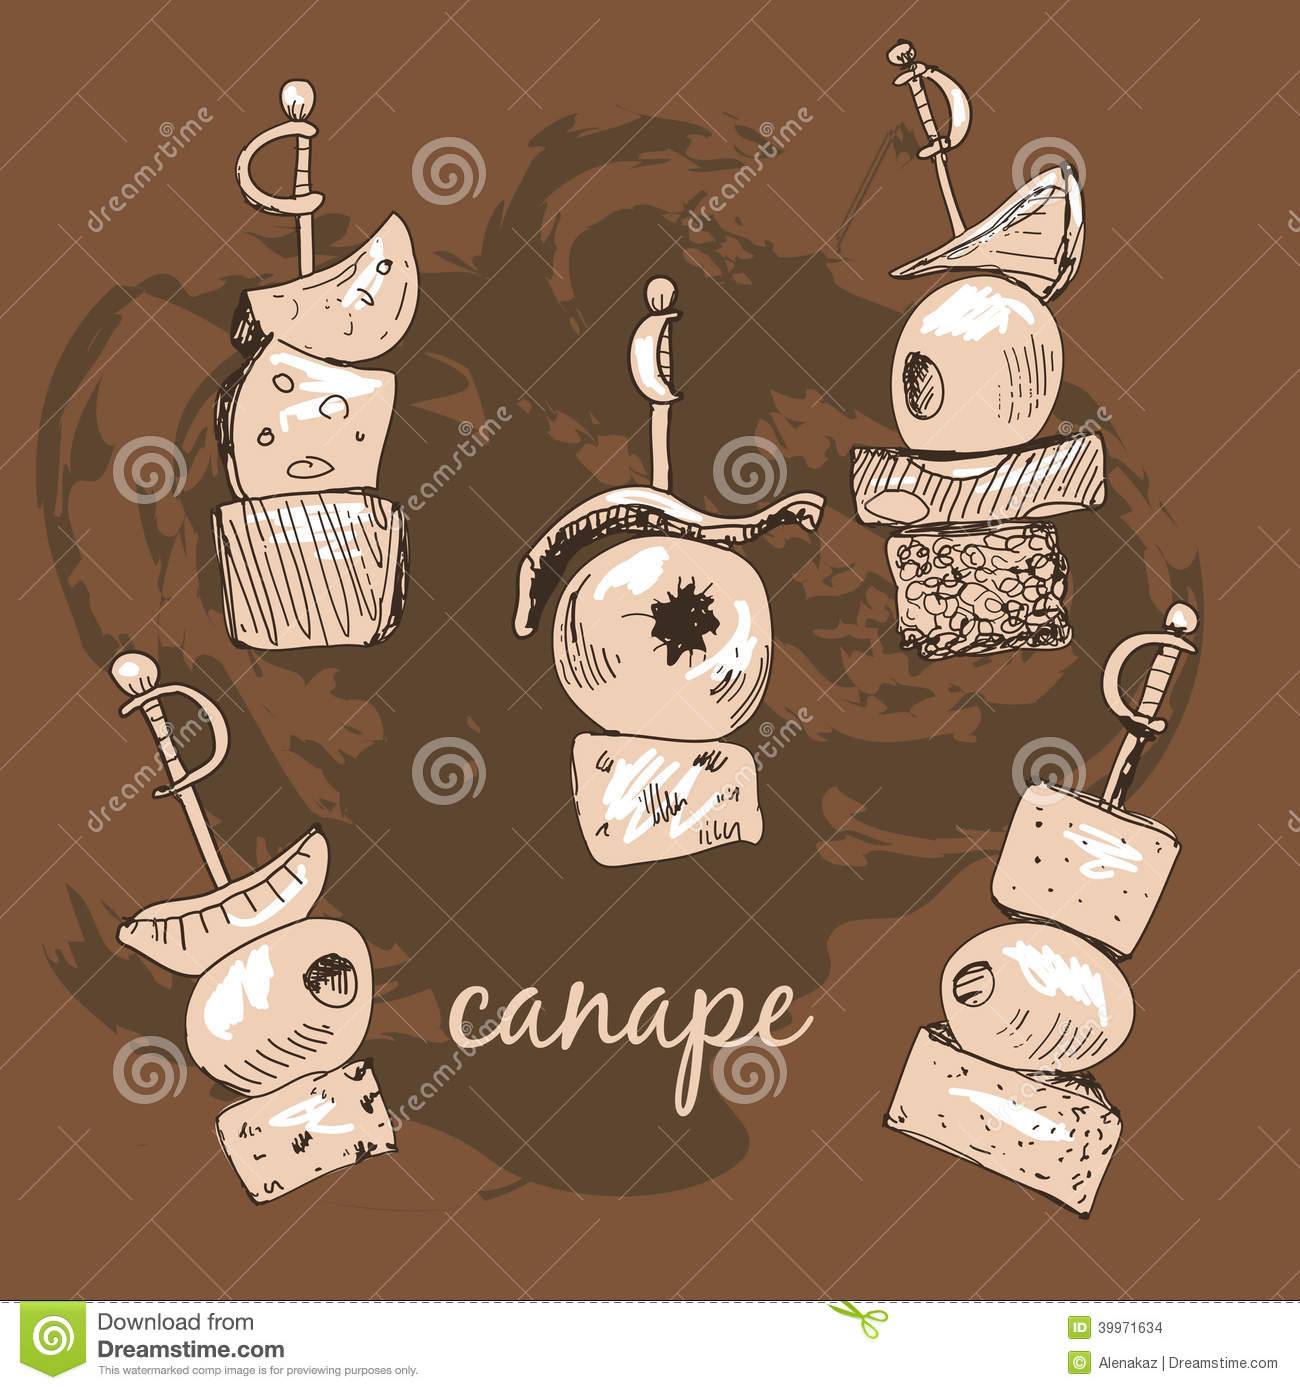 Canape stock vector image 39971634 for Canape vector download